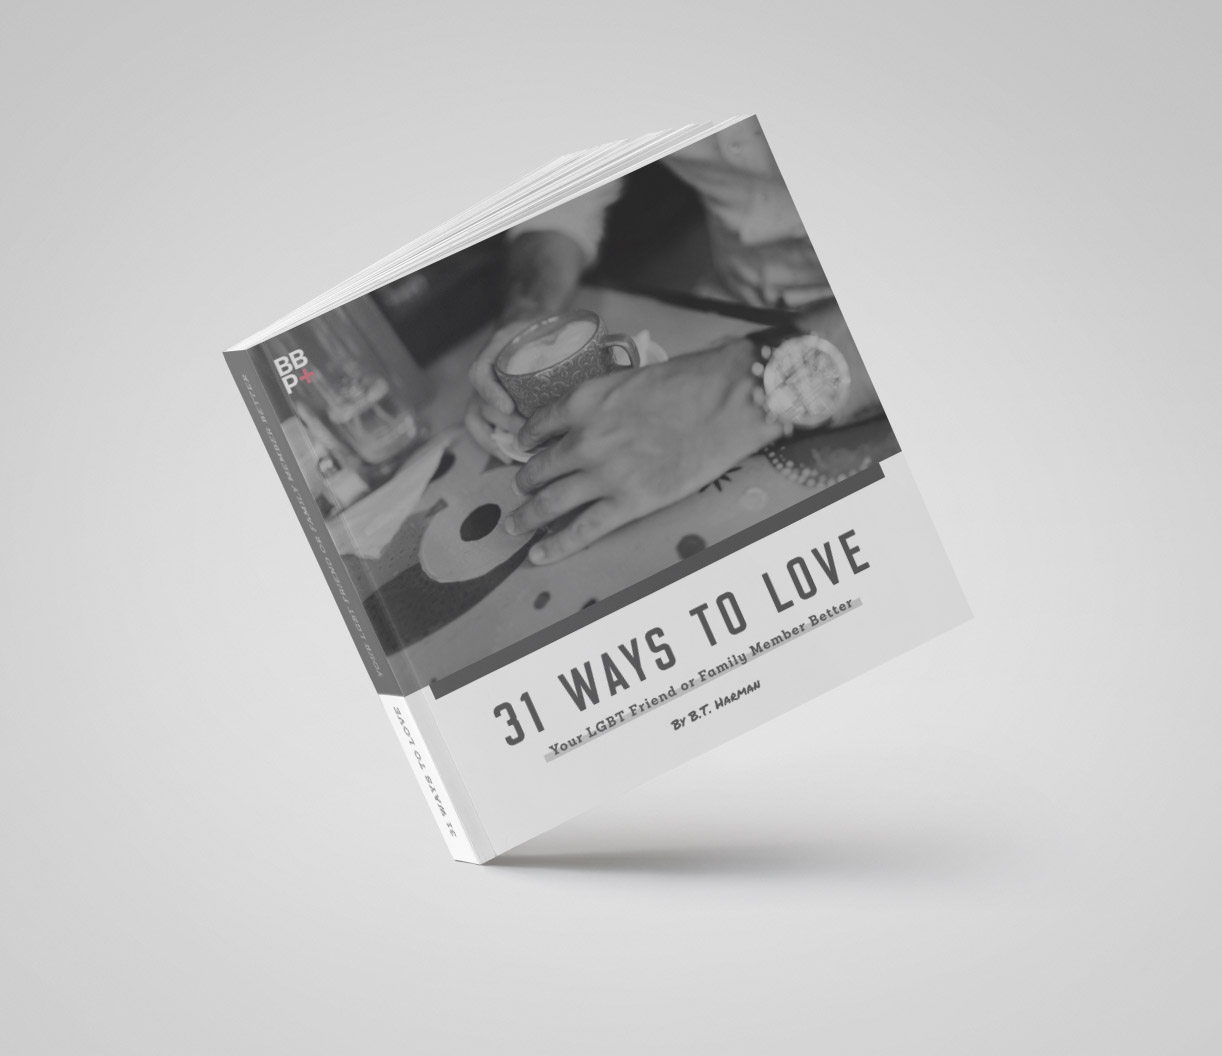 31 ways to love - cover mockup.jpg